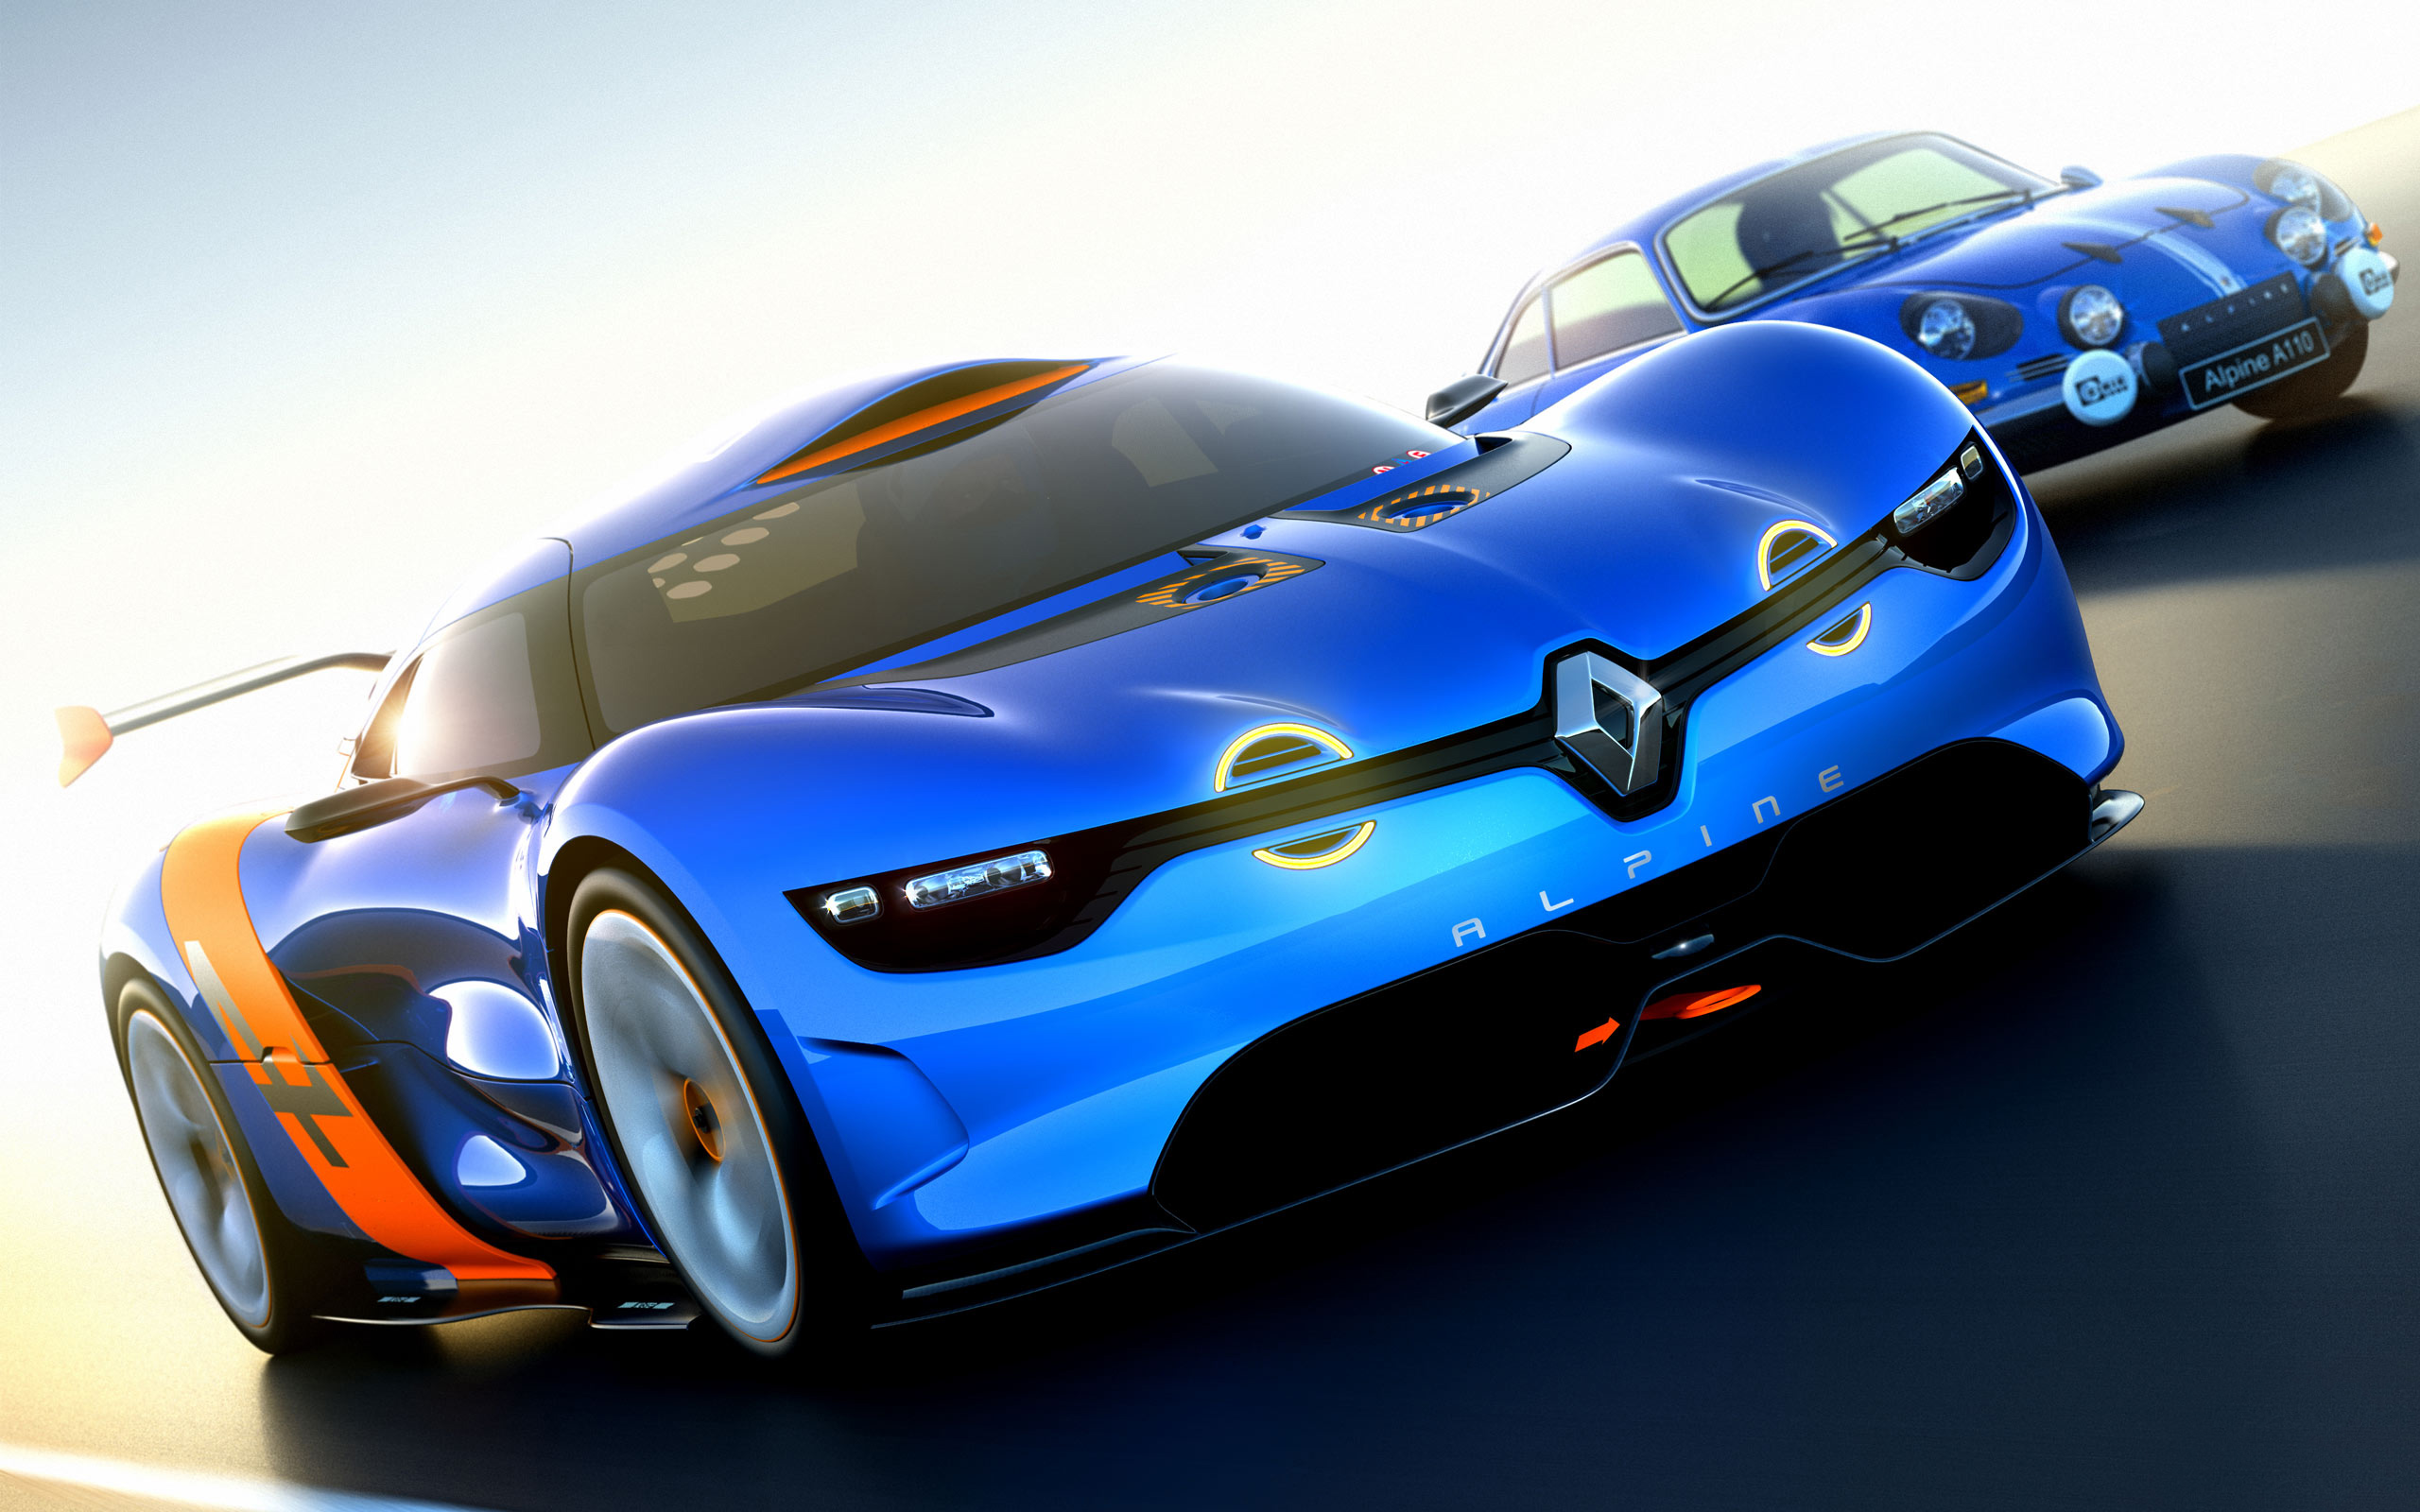 renault alpine a110 50 concept 3 wallpaper hd car wallpapers id 2737. Black Bedroom Furniture Sets. Home Design Ideas